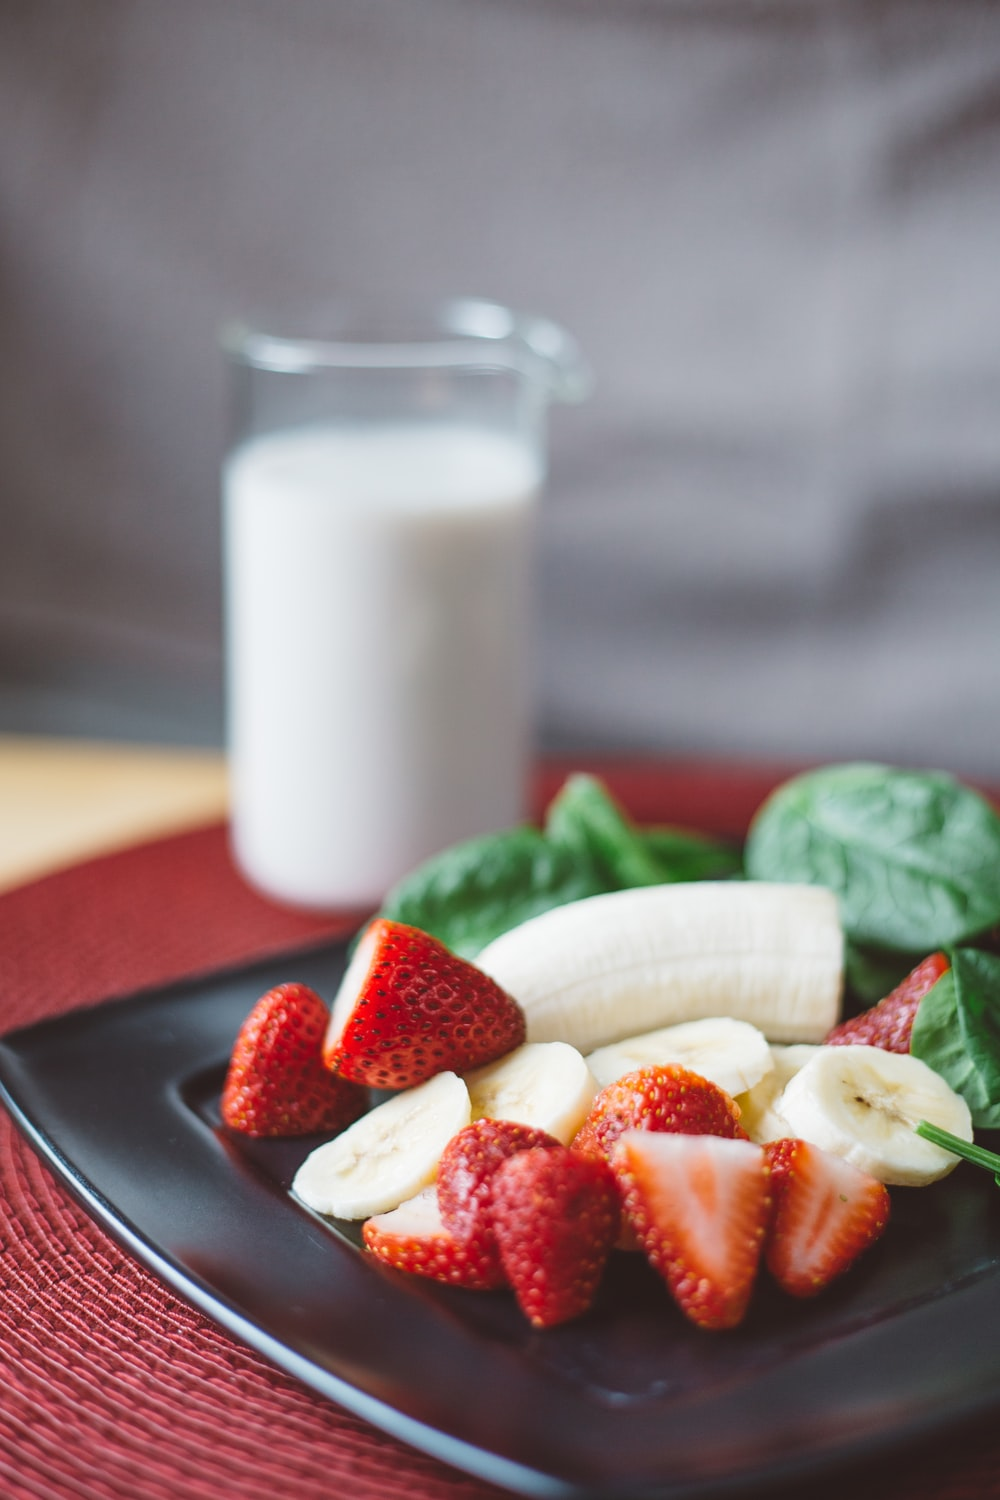 sliced strawberries and bananas on black plate beside white liquid-filled clear drinking glass